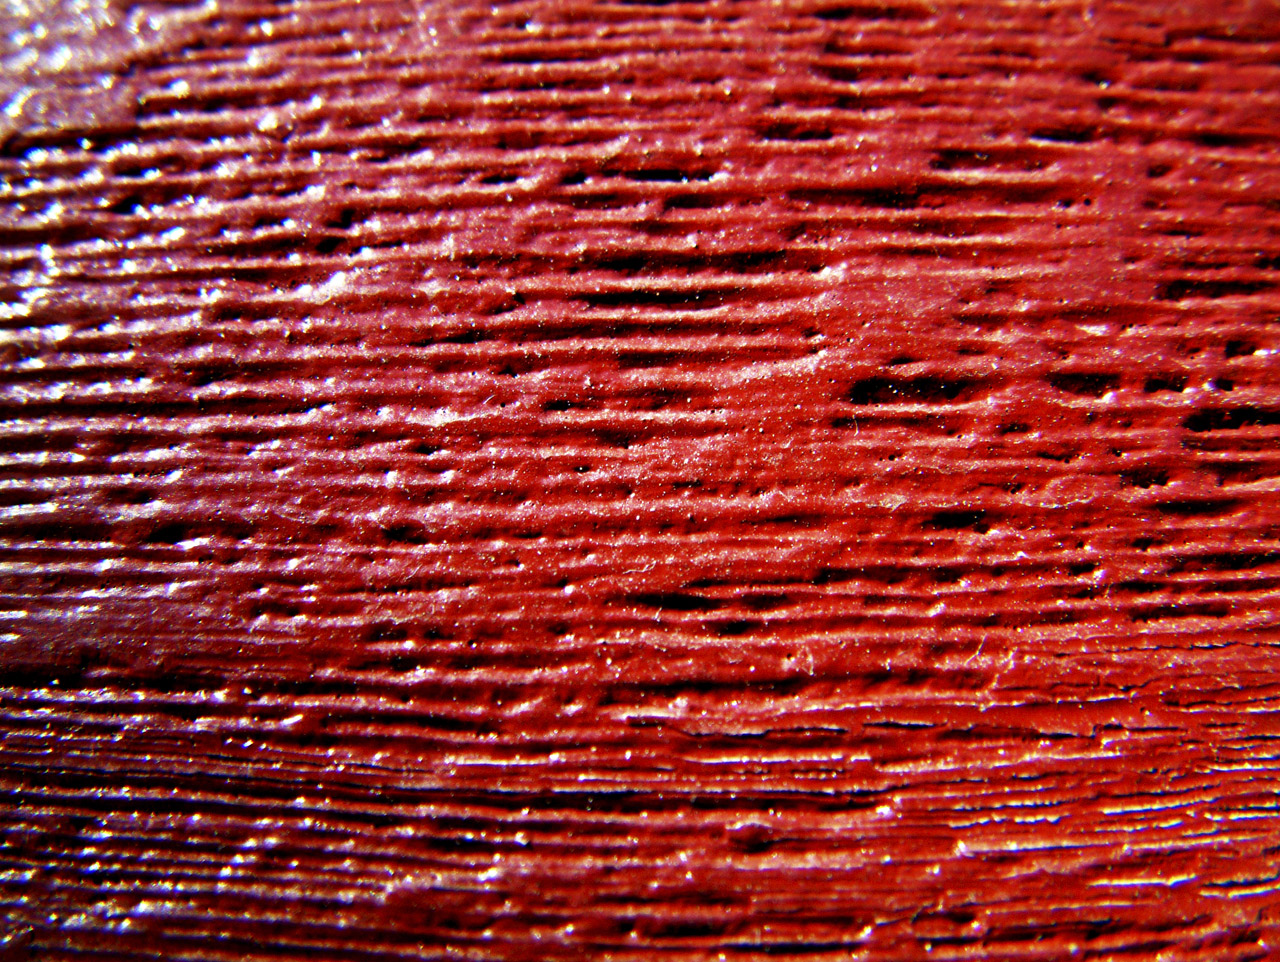 Painted Wood 01